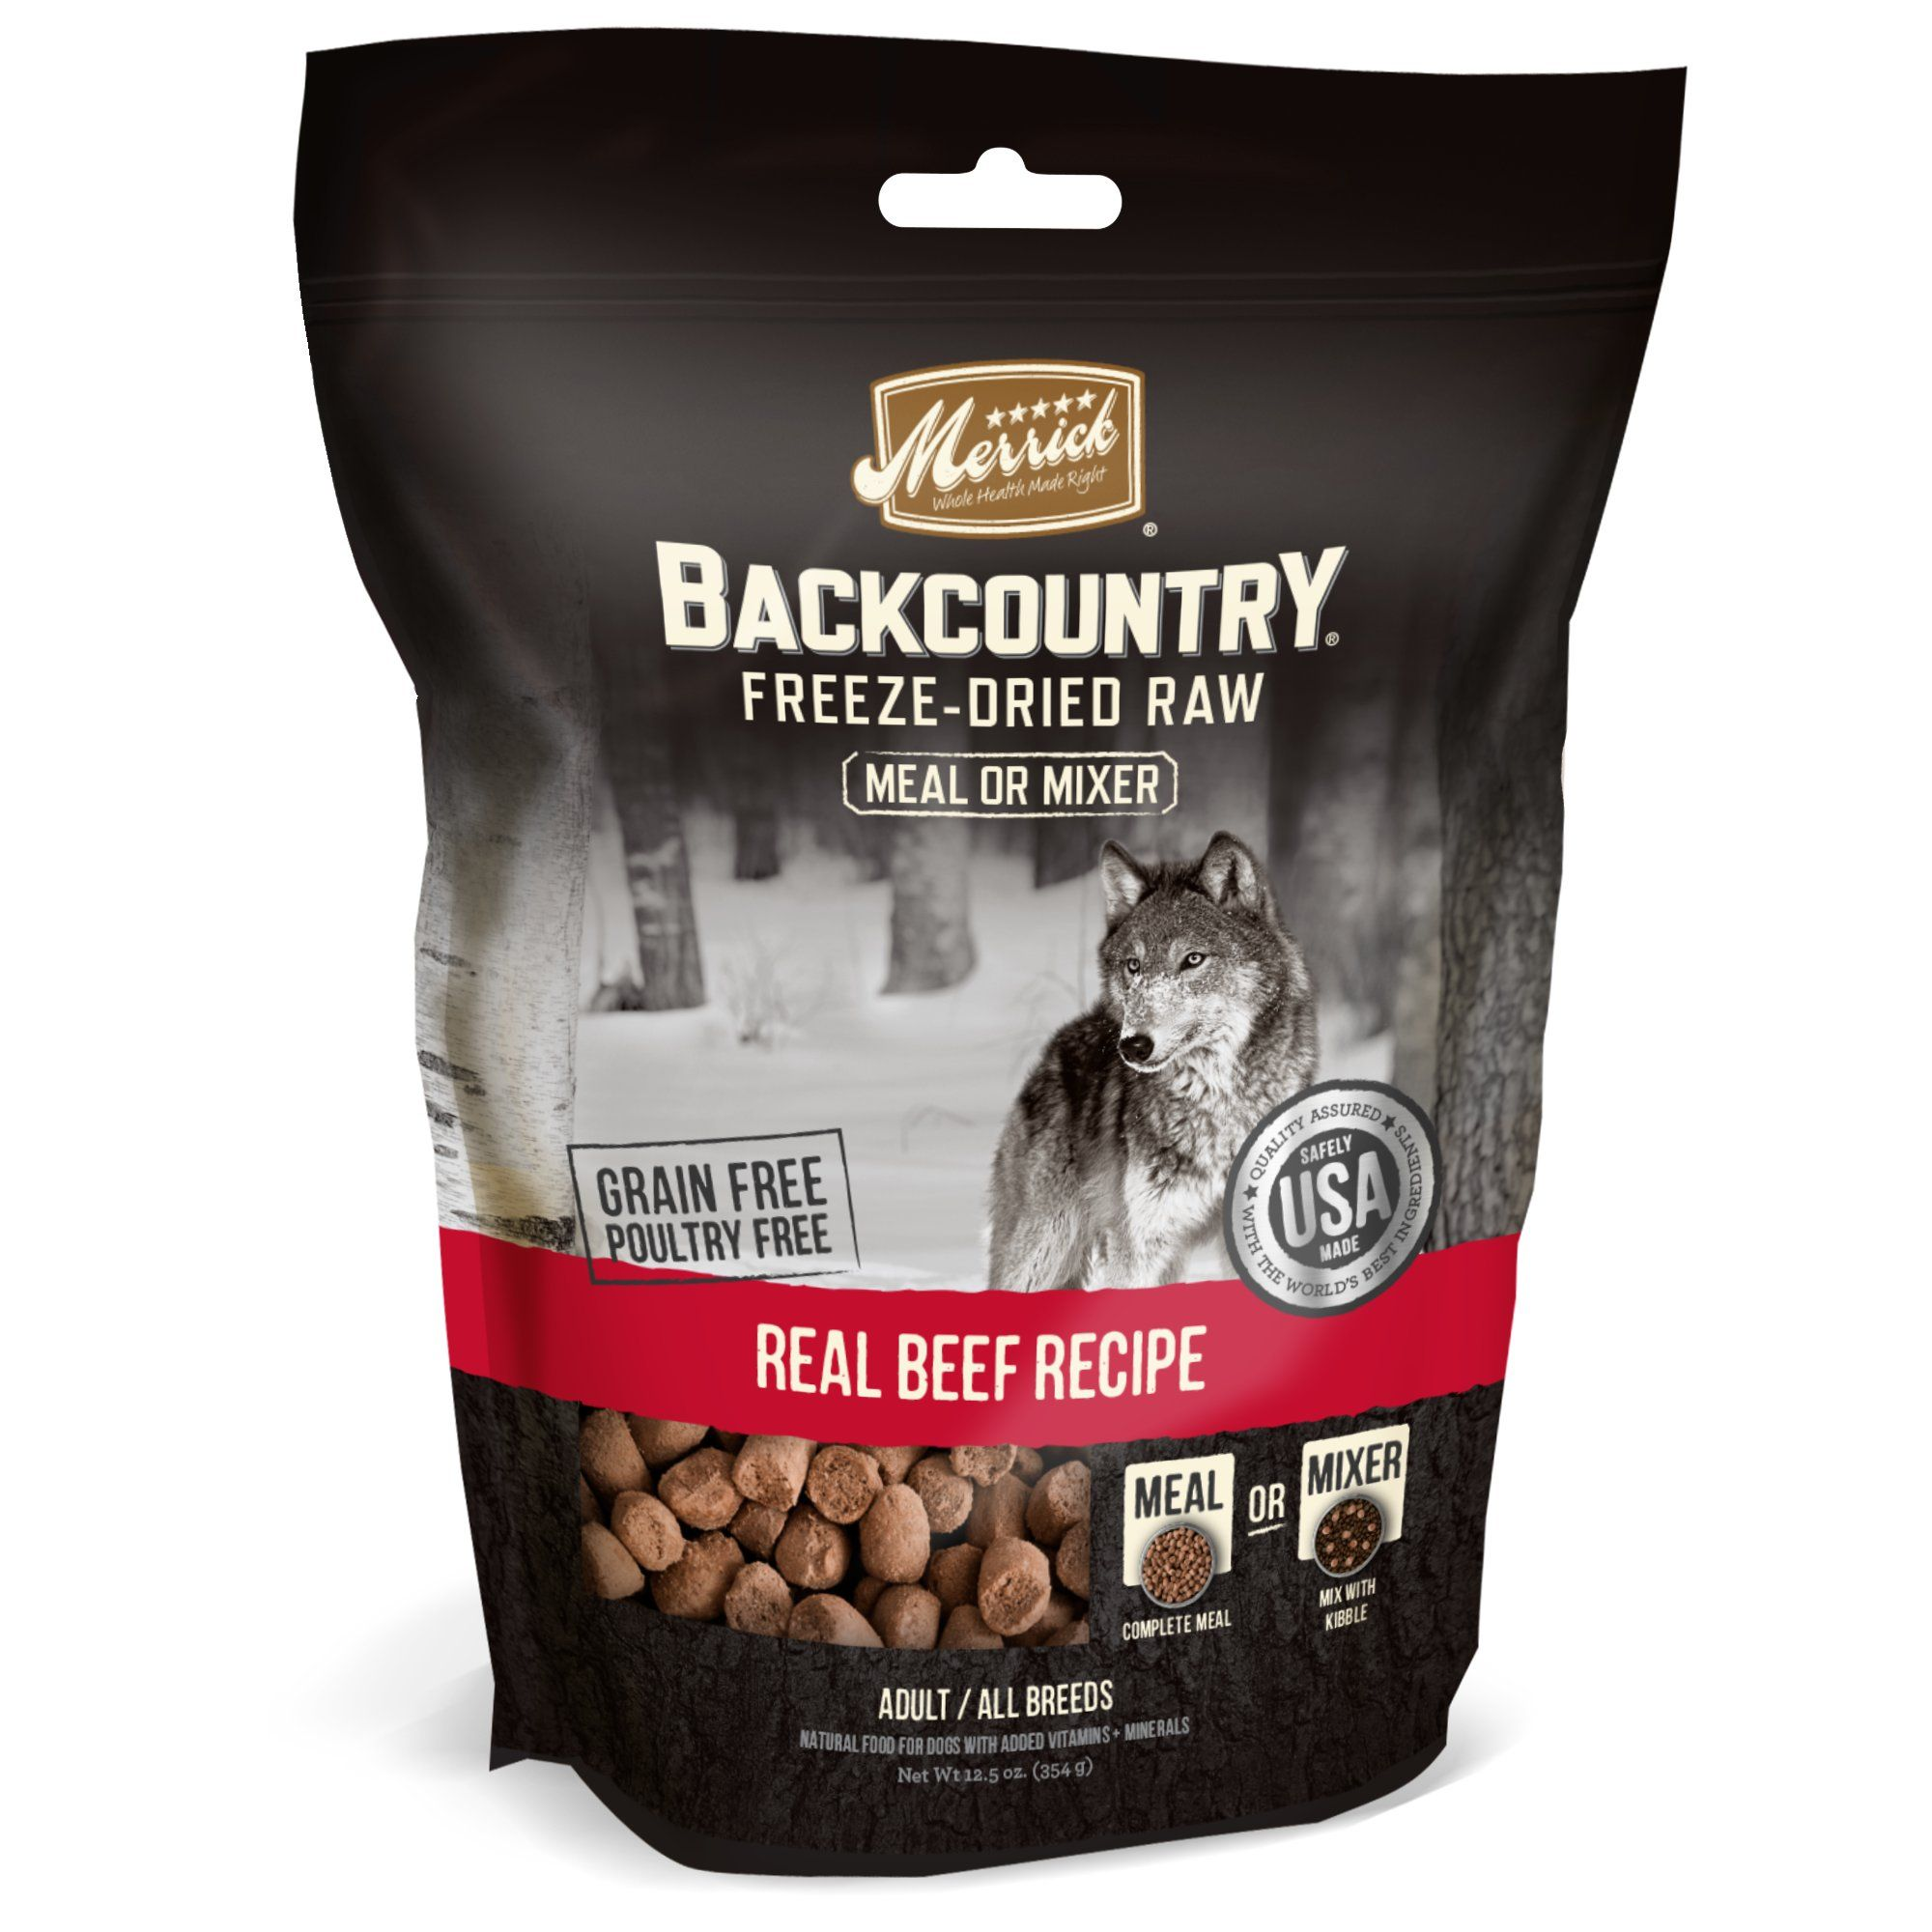 Merrick Backcountry Freeze Dried Raw Real Beef Recipe Meal Or